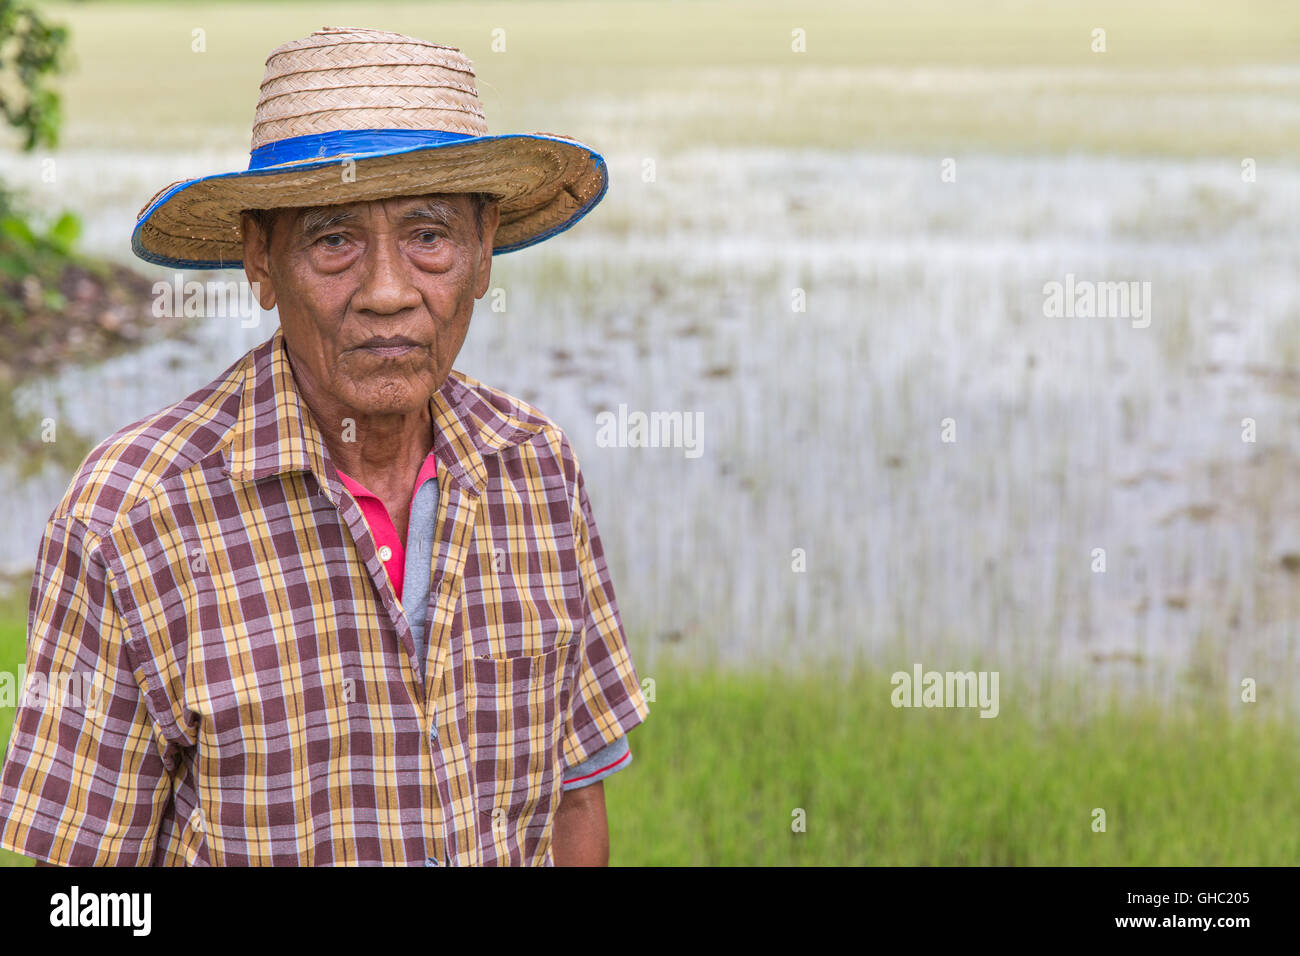 Elderly Thai rice farmer wearing a hat and looking down with a rice paddy in the background - Stock Image